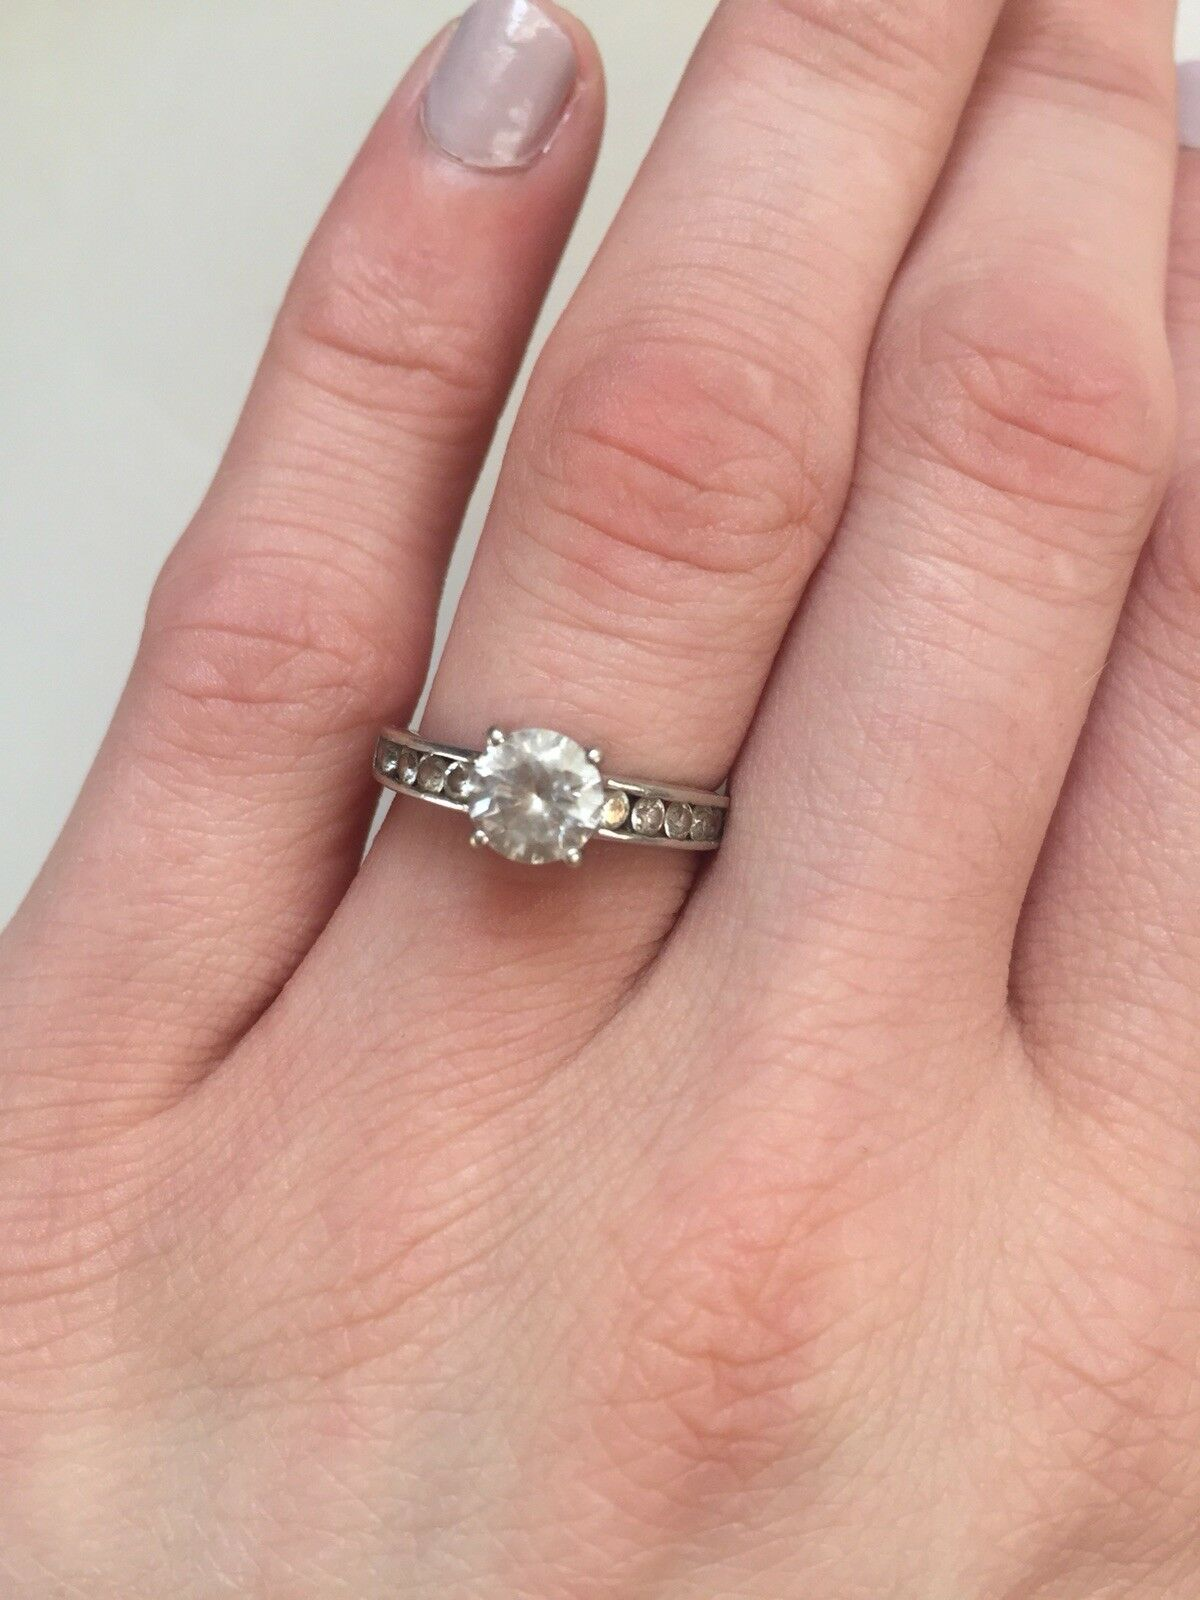 Best Beaverbrooks Engagement Rings deals | Compare Prices on dealsan ...